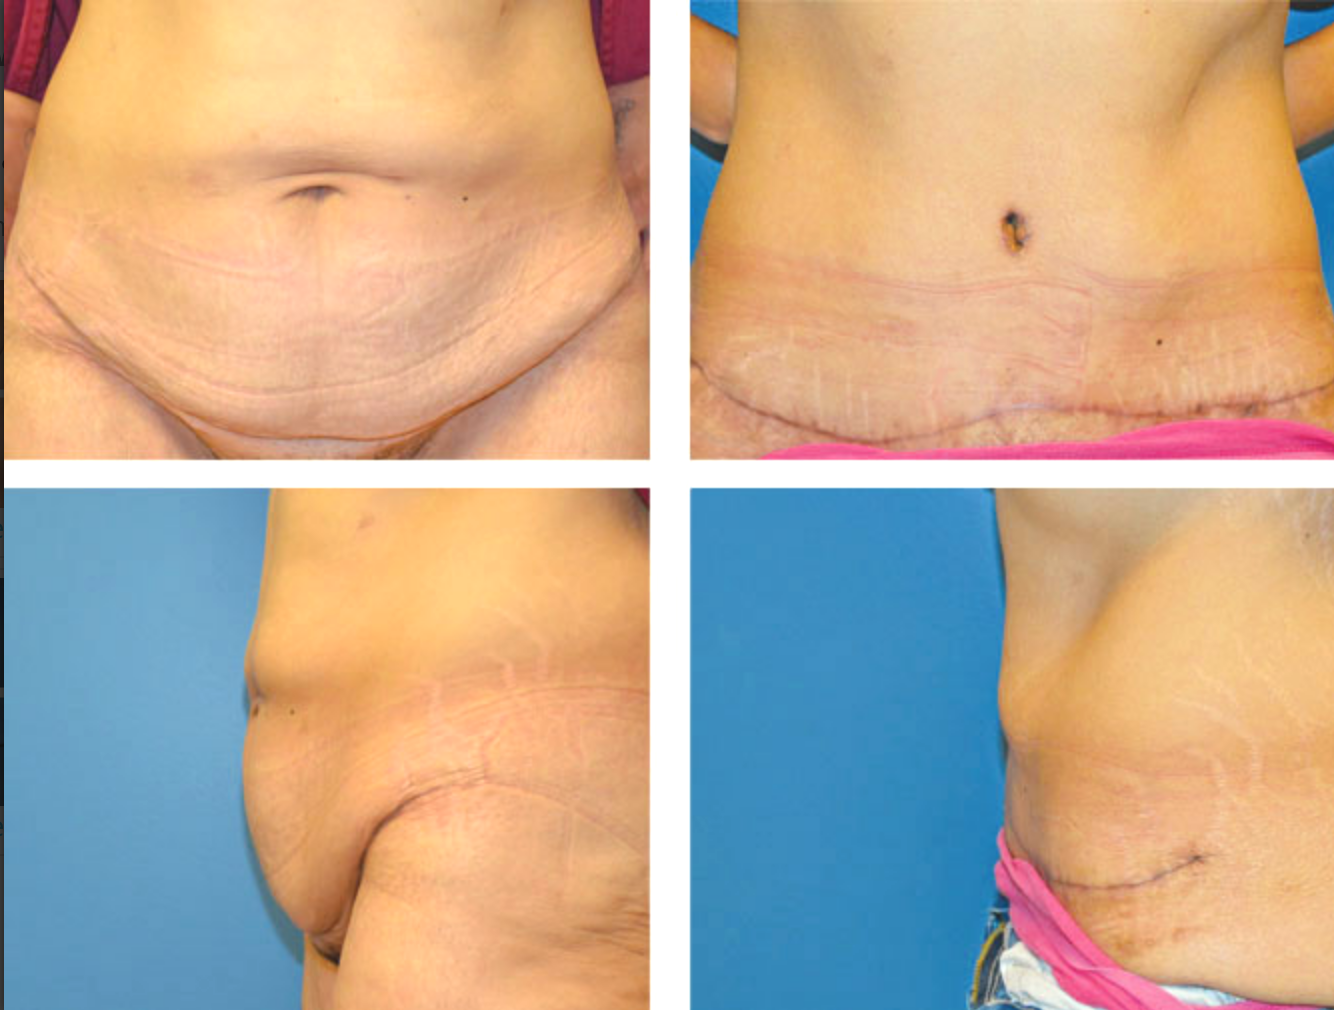 Panniculectomy Procedure Recovery Pictures And Cost